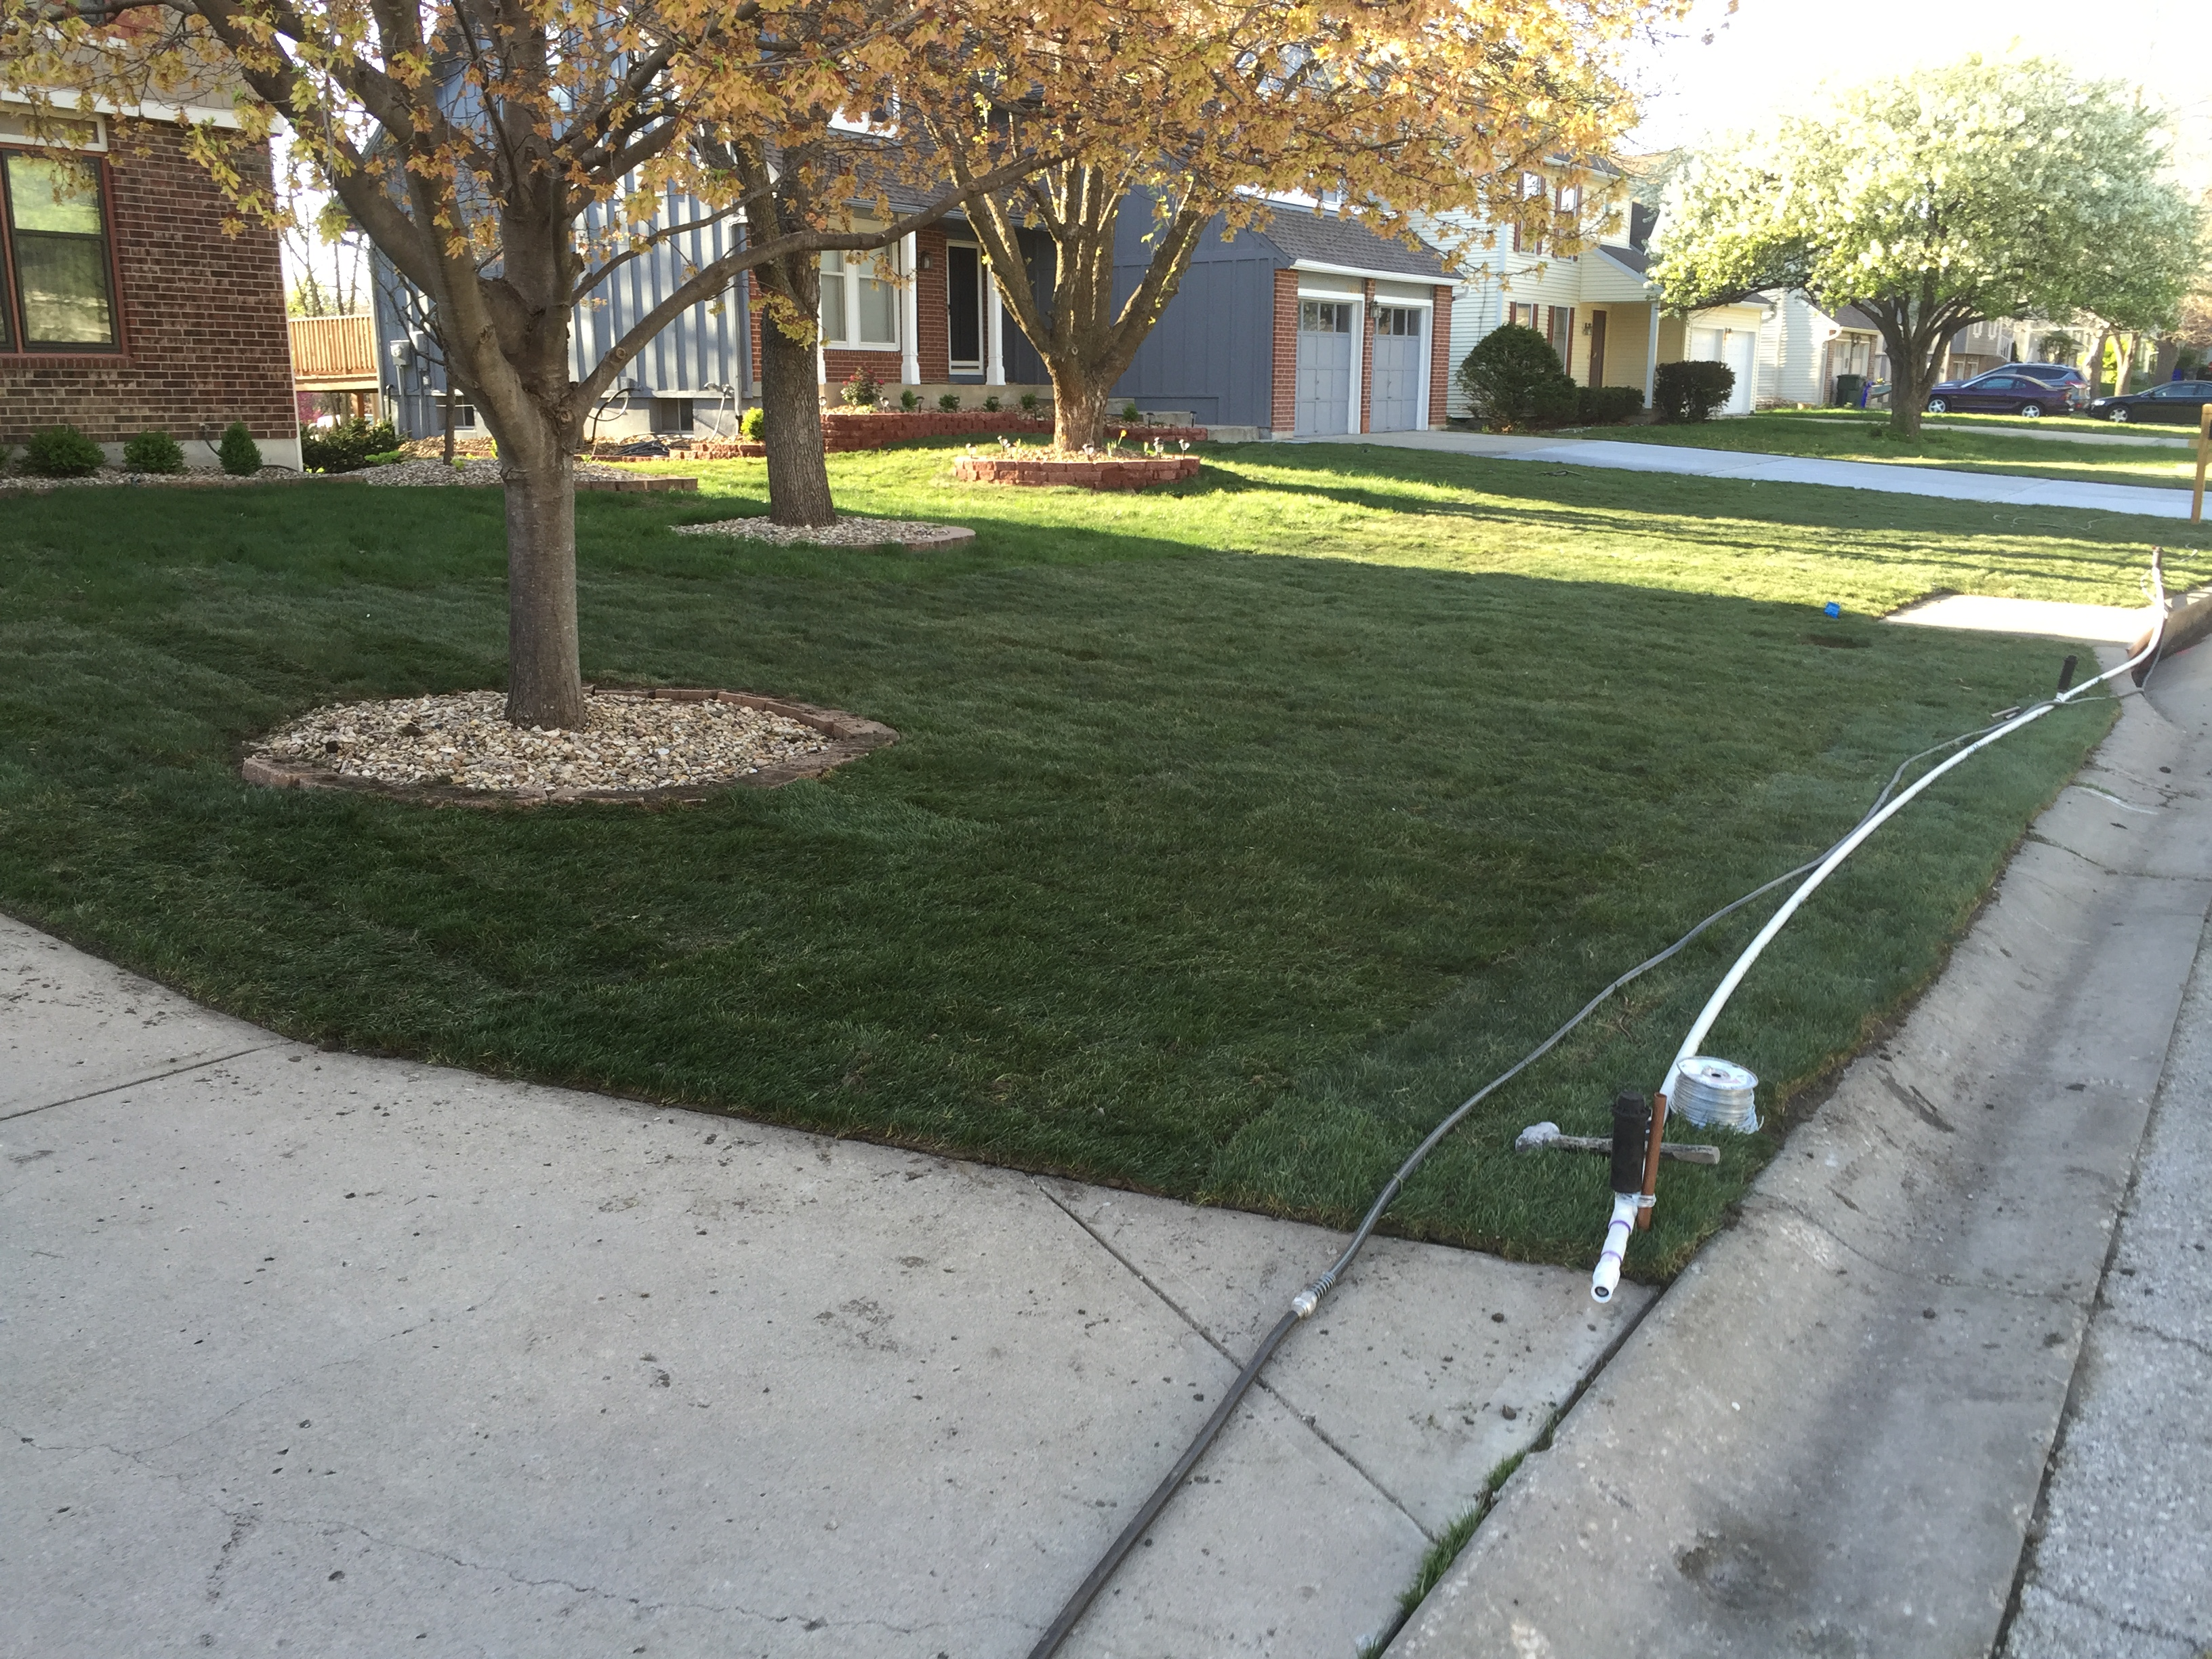 Temporary Irrigation System : Public works lawn restoration with sod and temporary